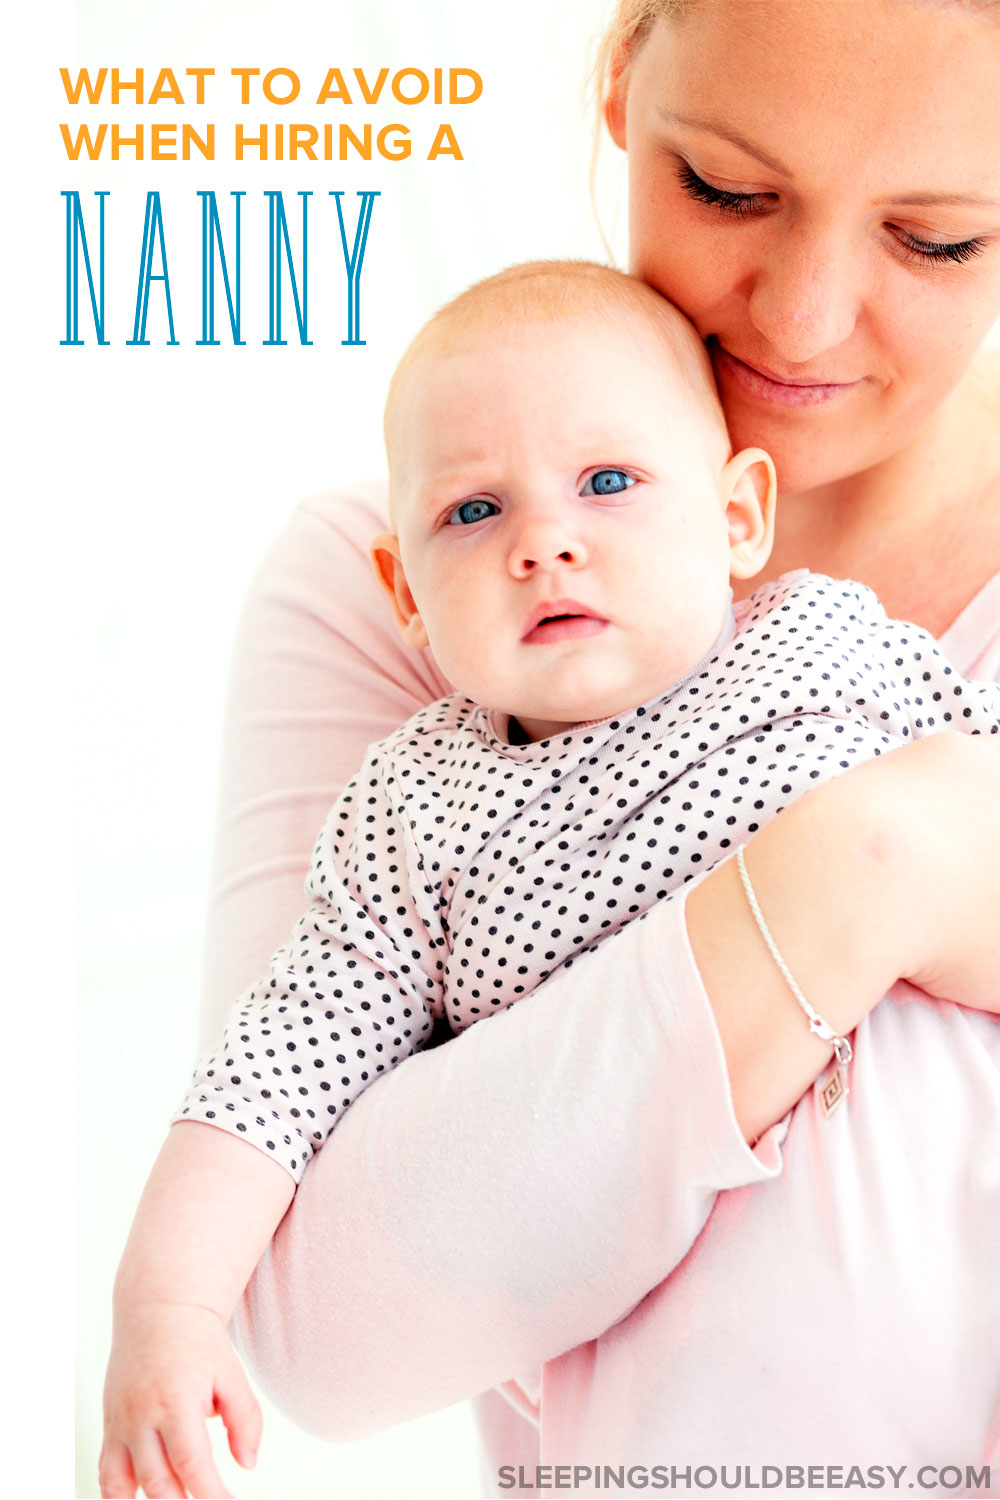 Hiring a nanny can be a stressful experience. Learn how to find a nanny without the headache! Here are 8 things you shouldn't do, including questions to ask, when interviewing childcare providers and making your selection.